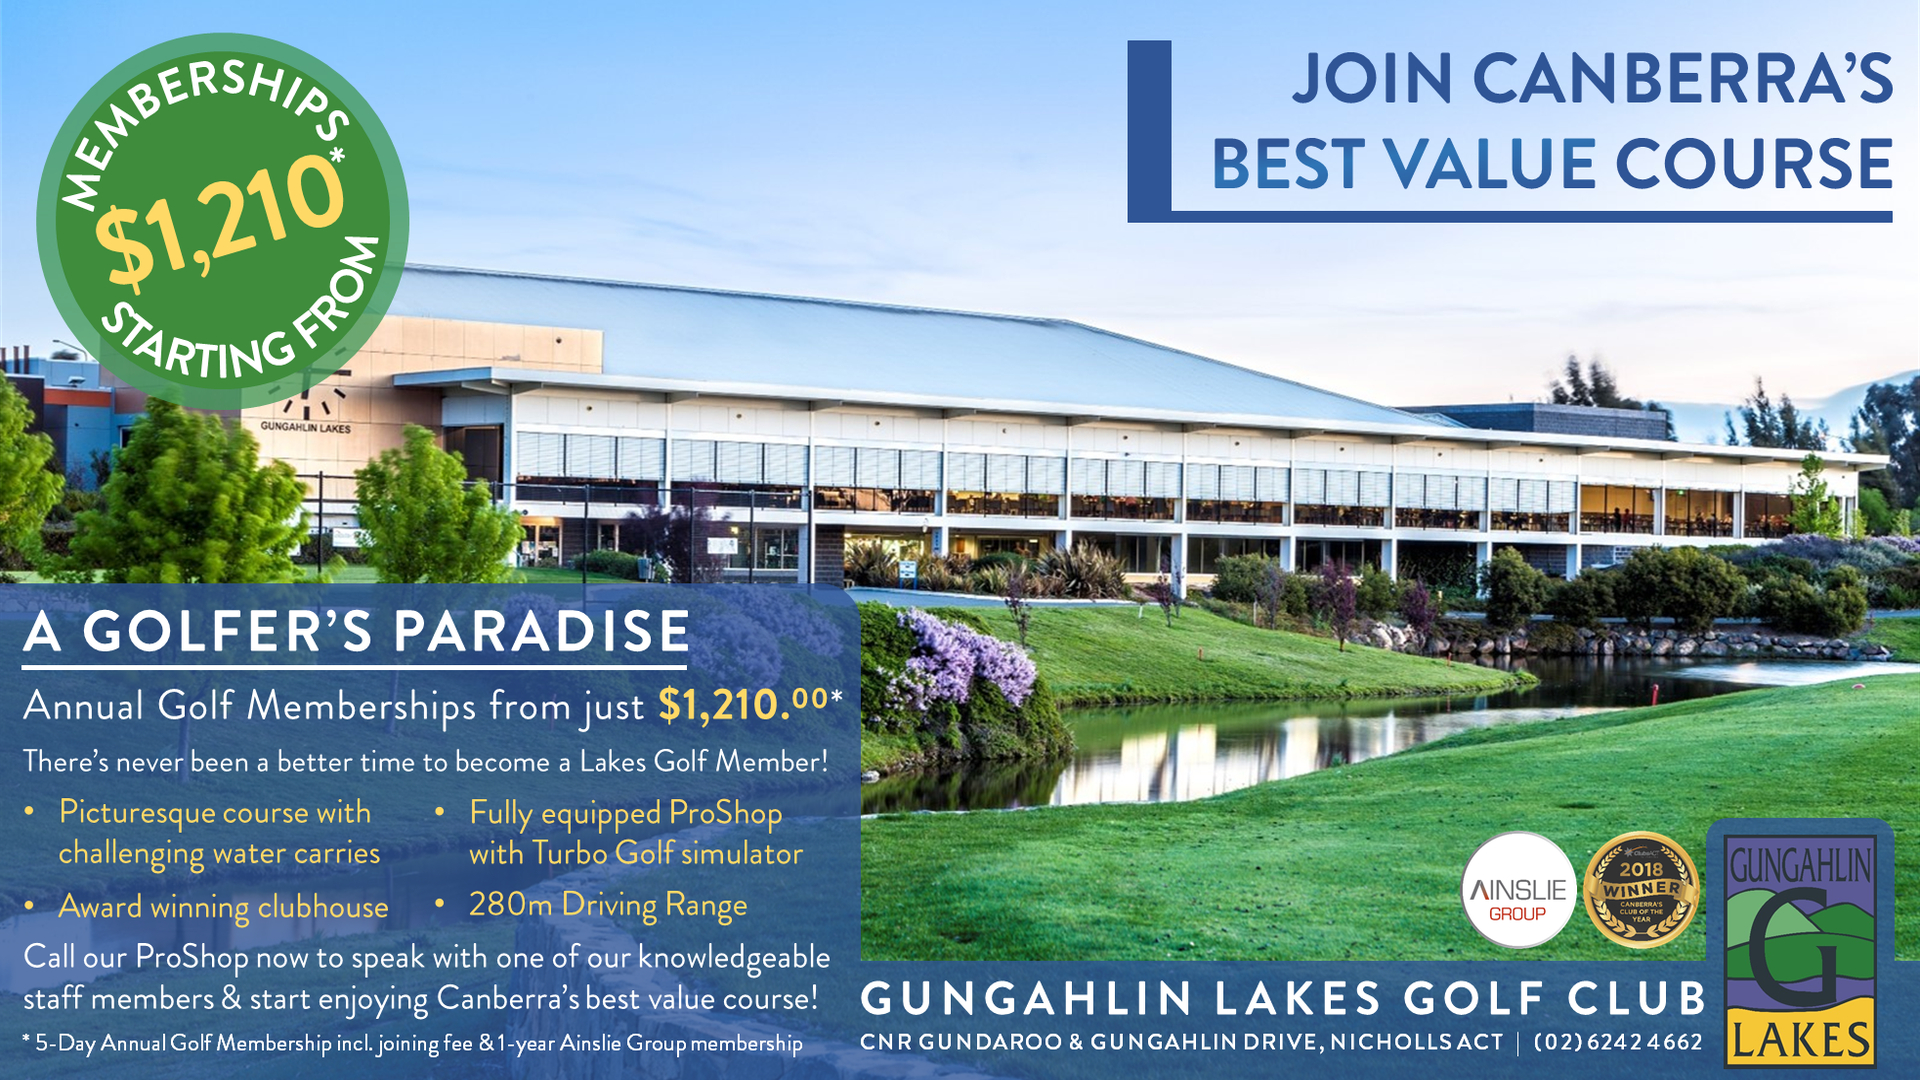 Gungahlin Lakes Golf Club Course Membership Price - City News Advertisement April 2019